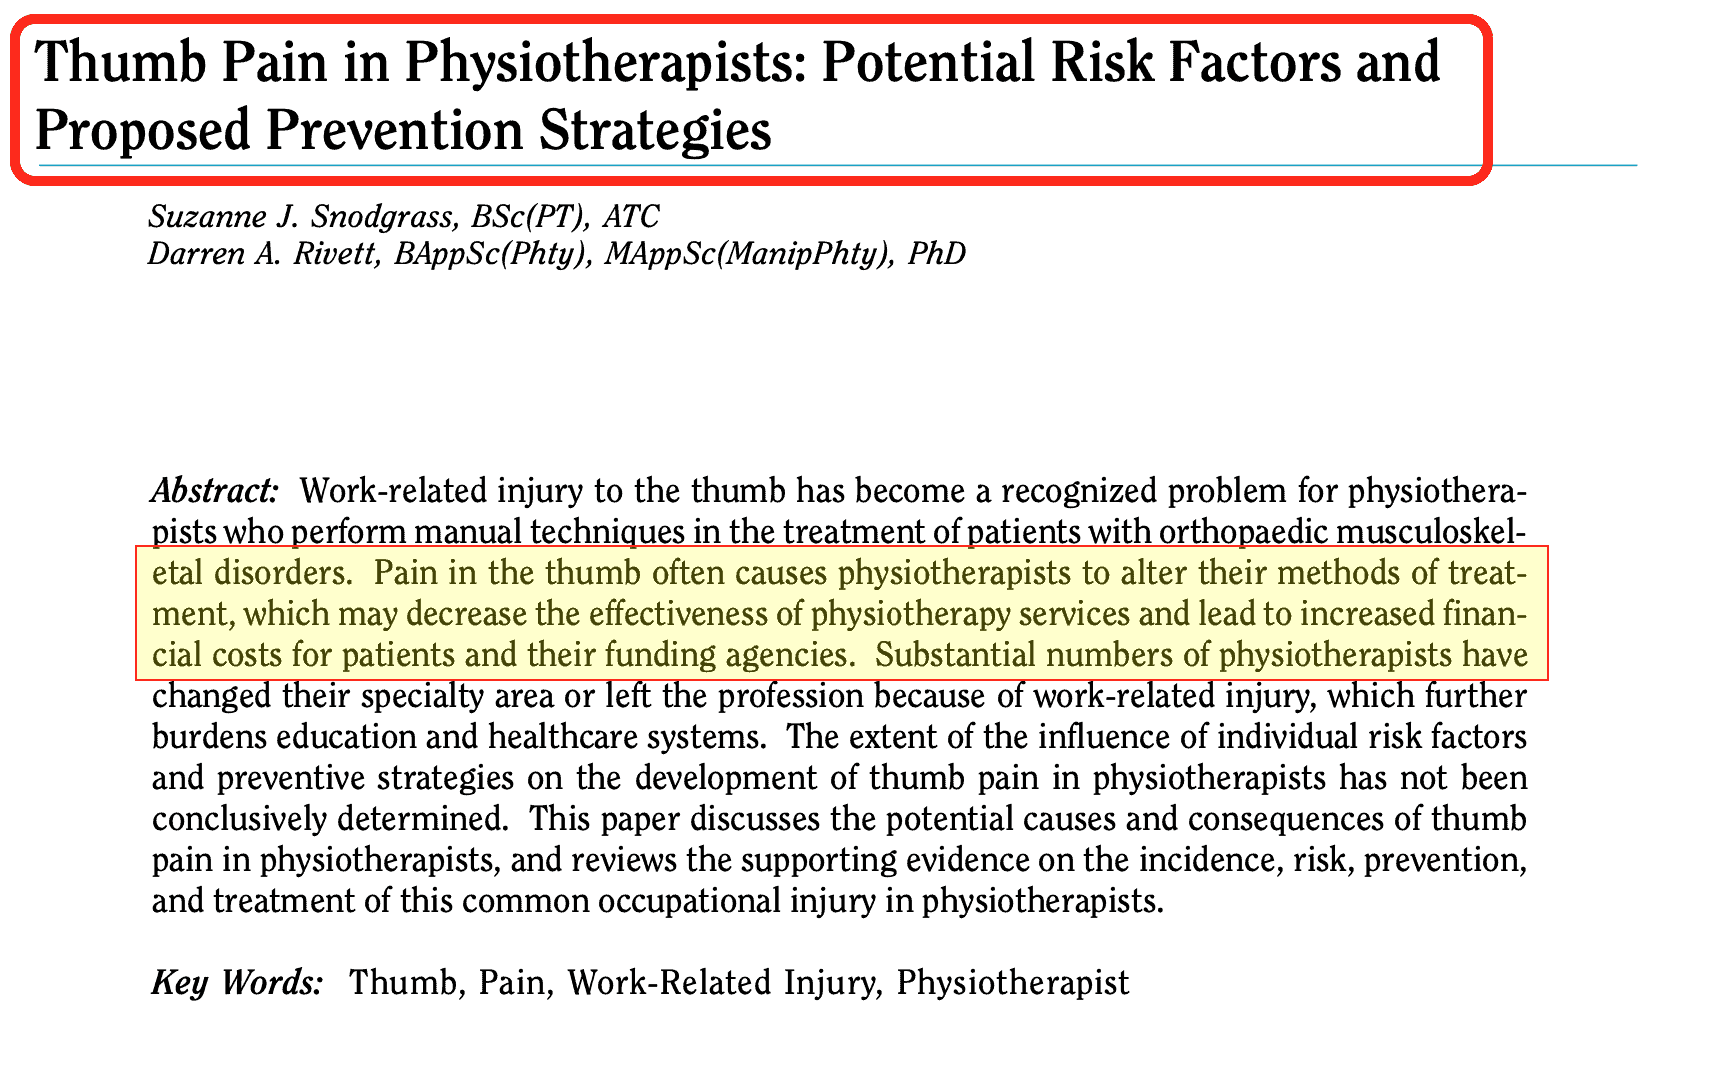 Studio Problemi mano Fisioterapisti Thumb Pain in Physiotherapists - Potential Risk Factors and Proposed Prevention Strategies - The Journal of Manual & Manipulative Therapy 2002